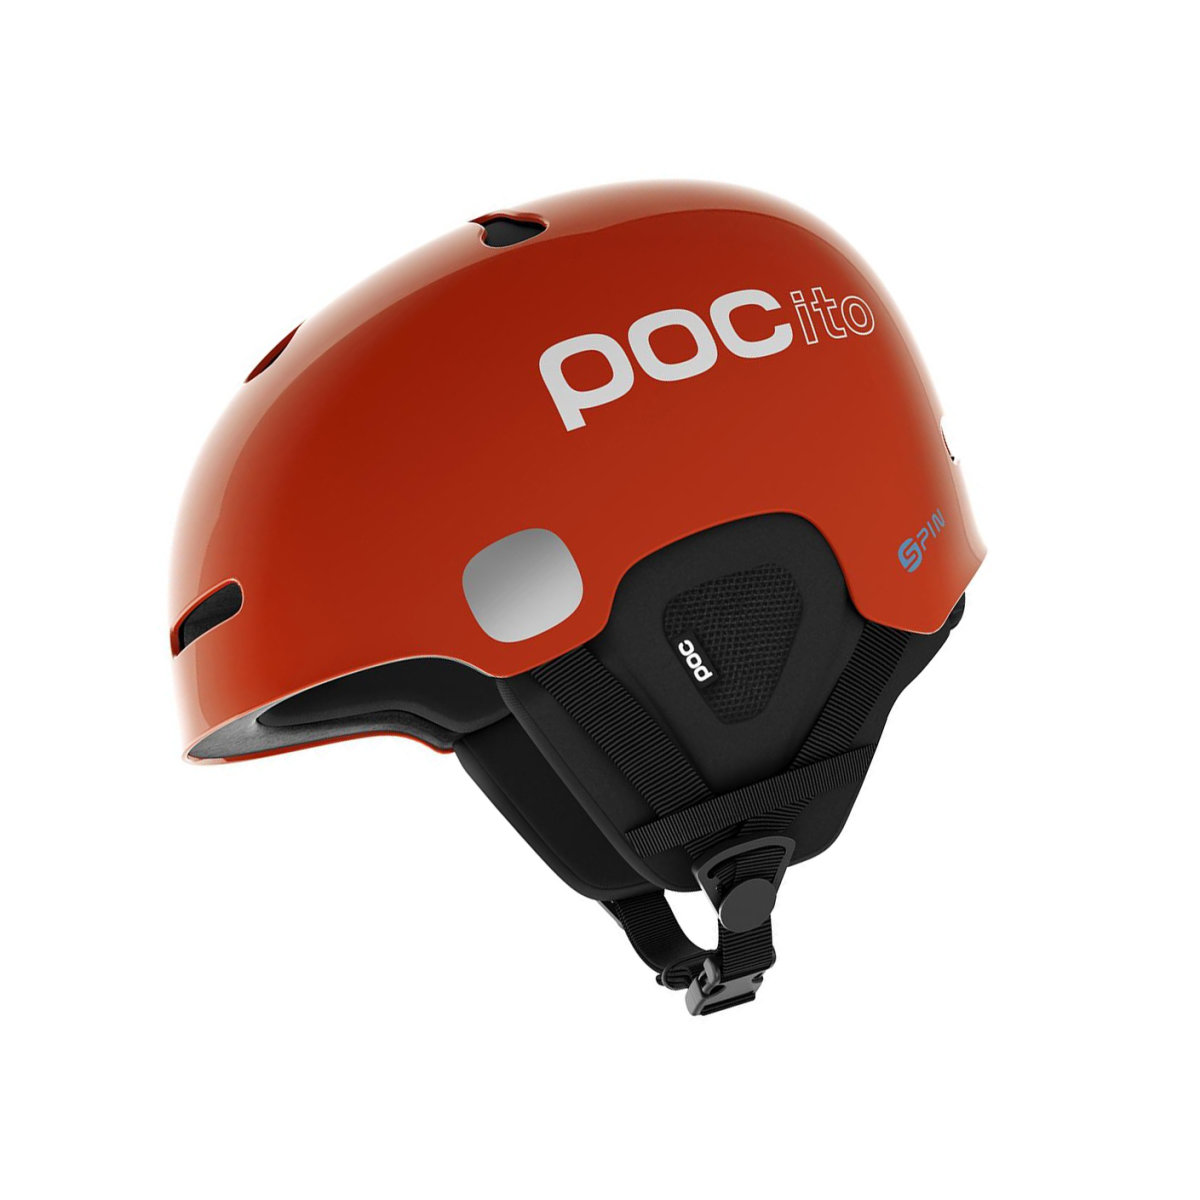 Шлем горнолыжный POC POCito Auric Cut SPIN Fluorescent Orange 64 PC 104989050MLG1